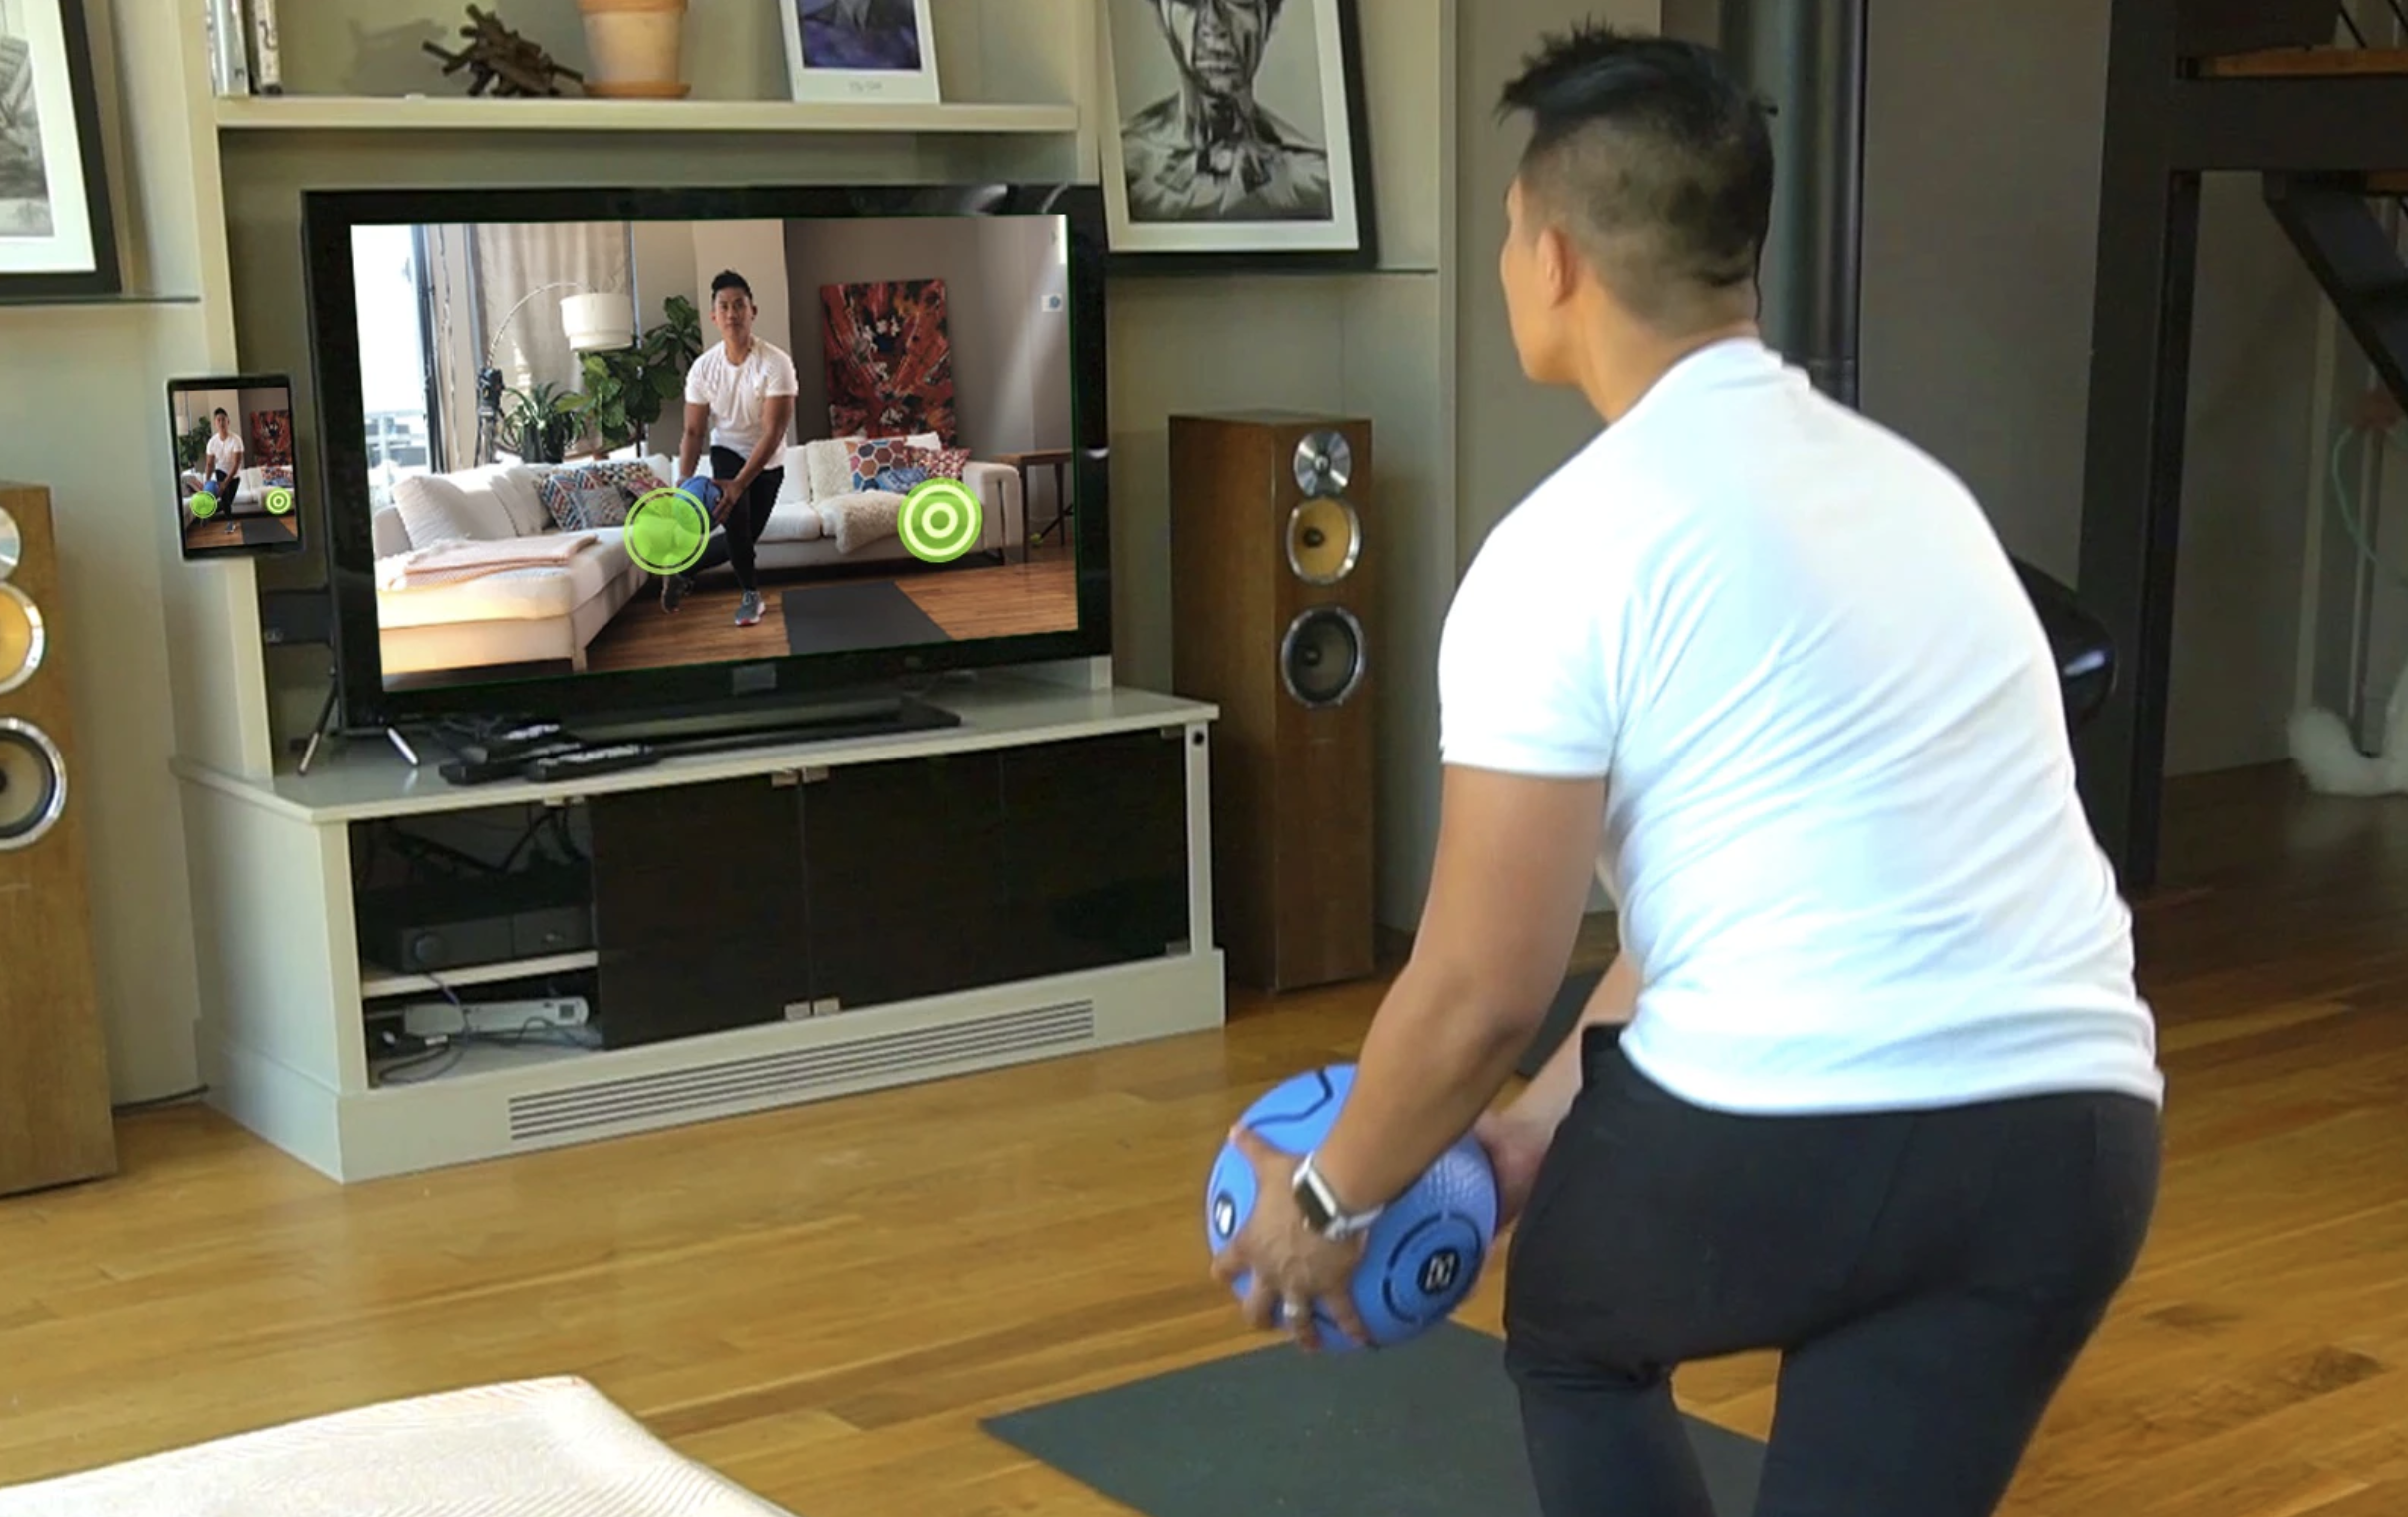 A person using the medicine ball with a TV